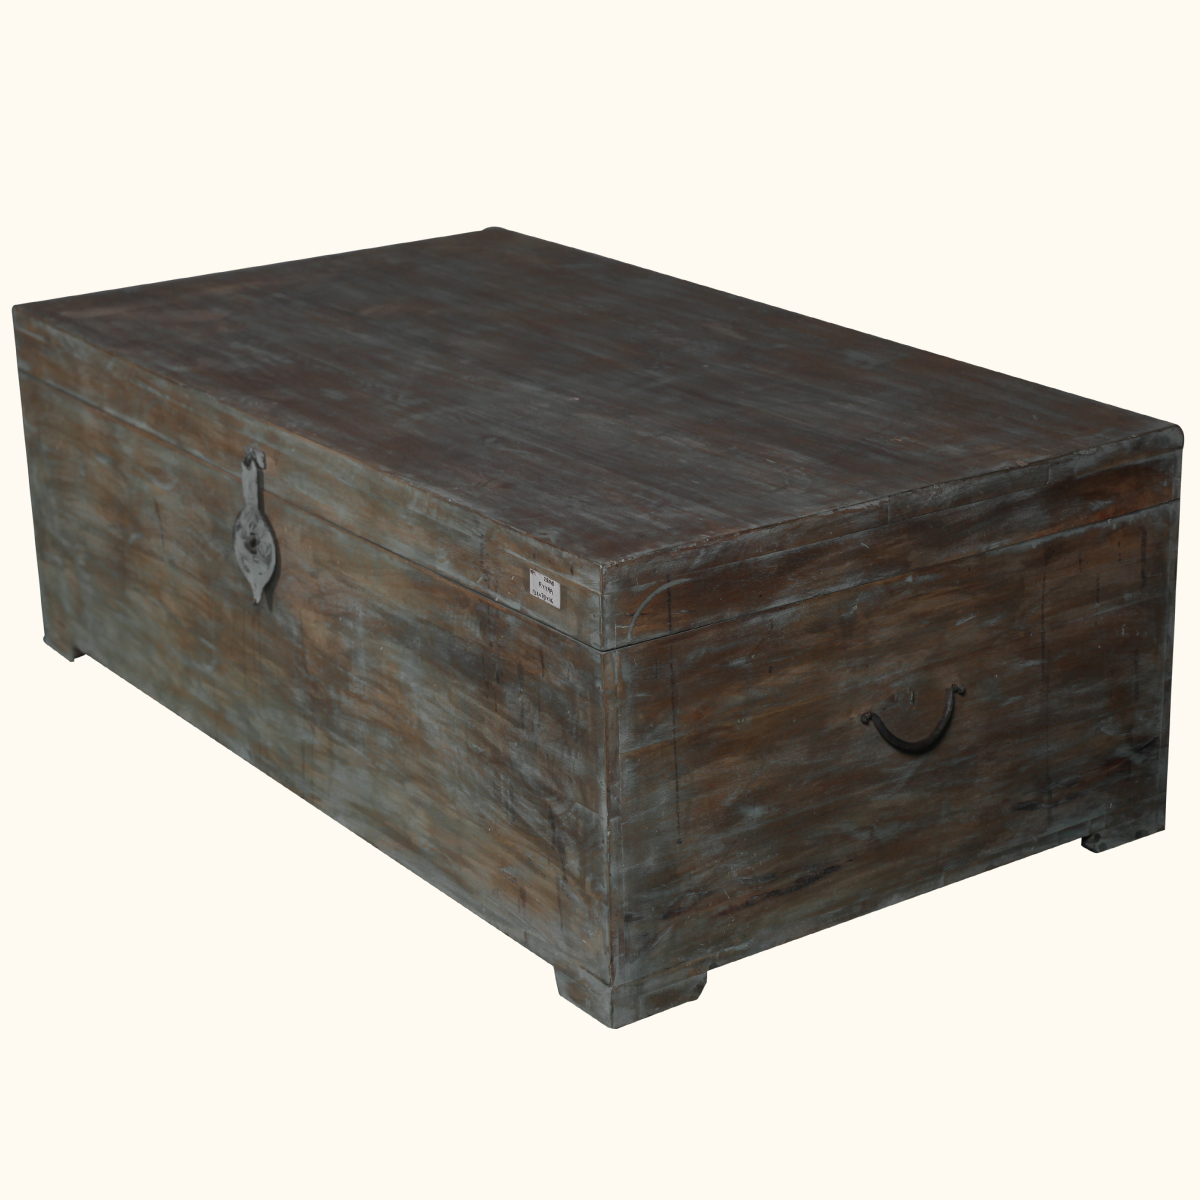 Rustic Mango Wood Distressed Storage Coffee Table Chest Hope Box Trunk Furniture Ebay